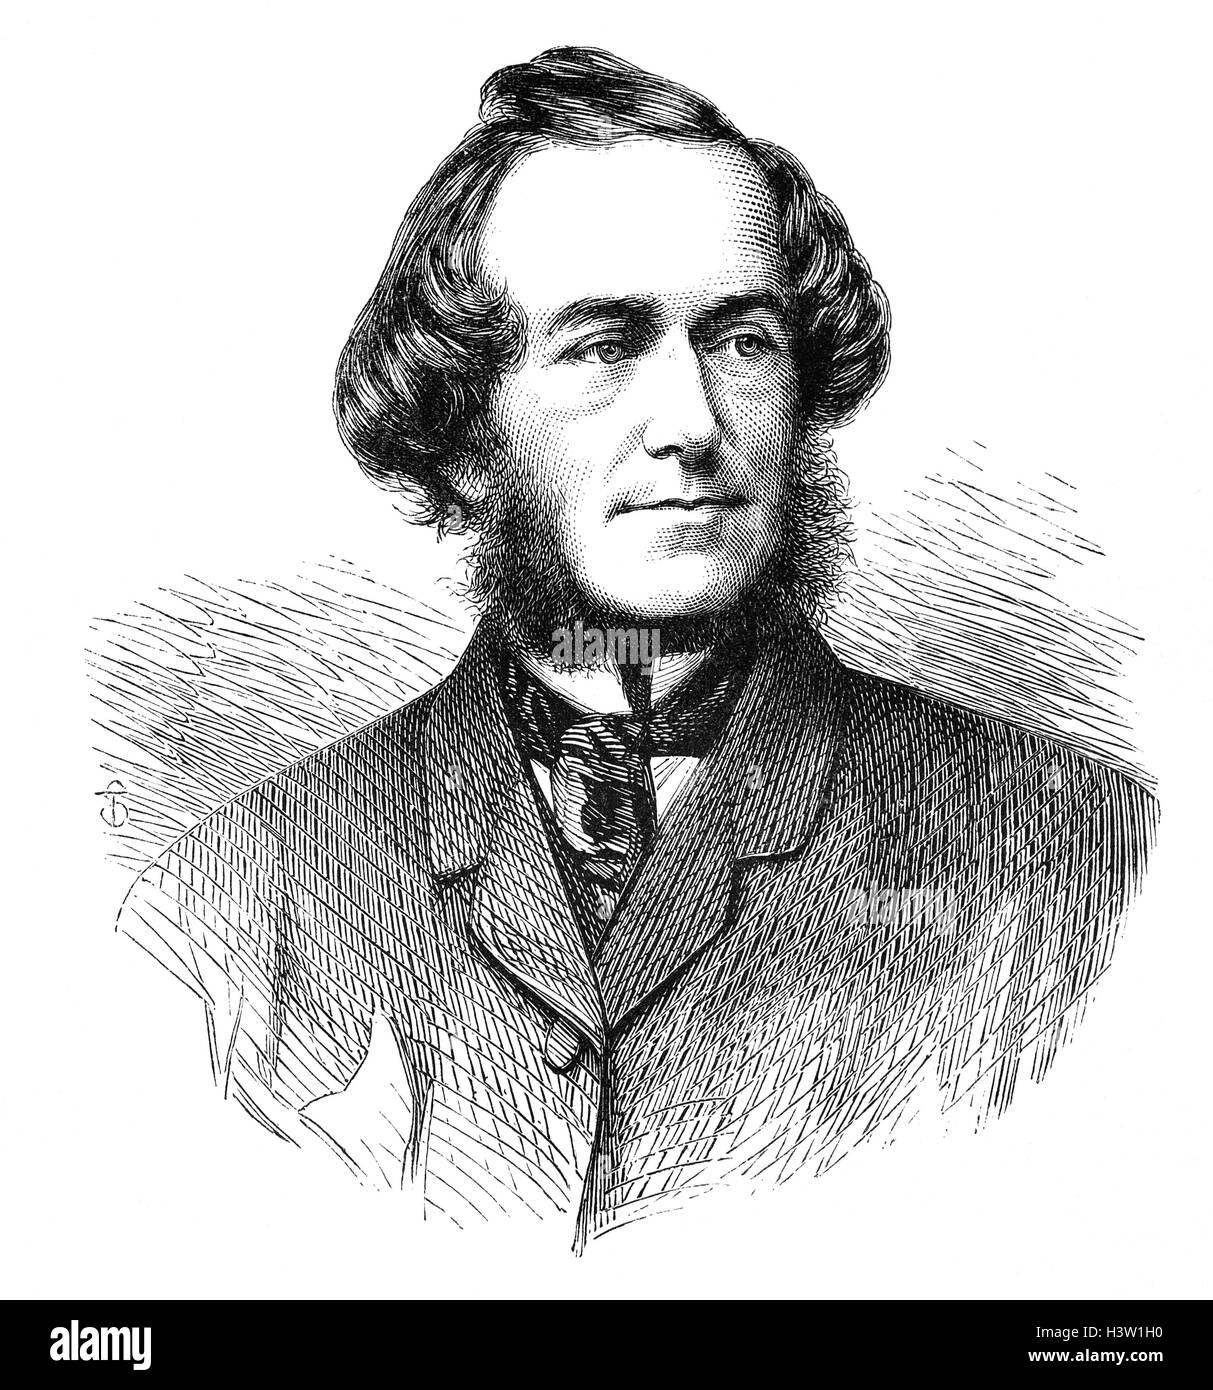 John Leech (1817 – 1864) was an English caricaturist and illustrator best known for his work for Punch, a humorous - Stock Image